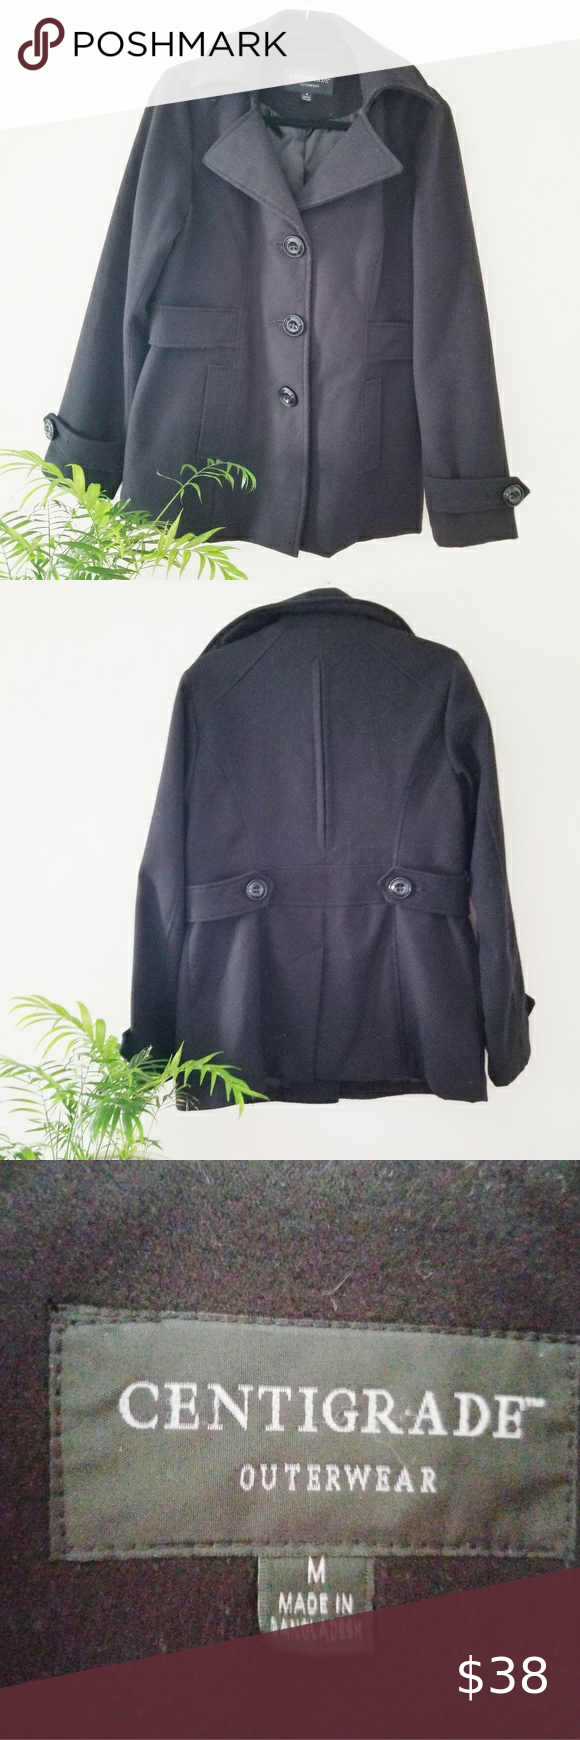 Centigrade Outerwear Wool Winter Coat Great Coat For Winter Black Little Details On Sleave And Back Add To The Great L Wool Winter Coat Outerwear Winter Coat [ 1740 x 580 Pixel ]